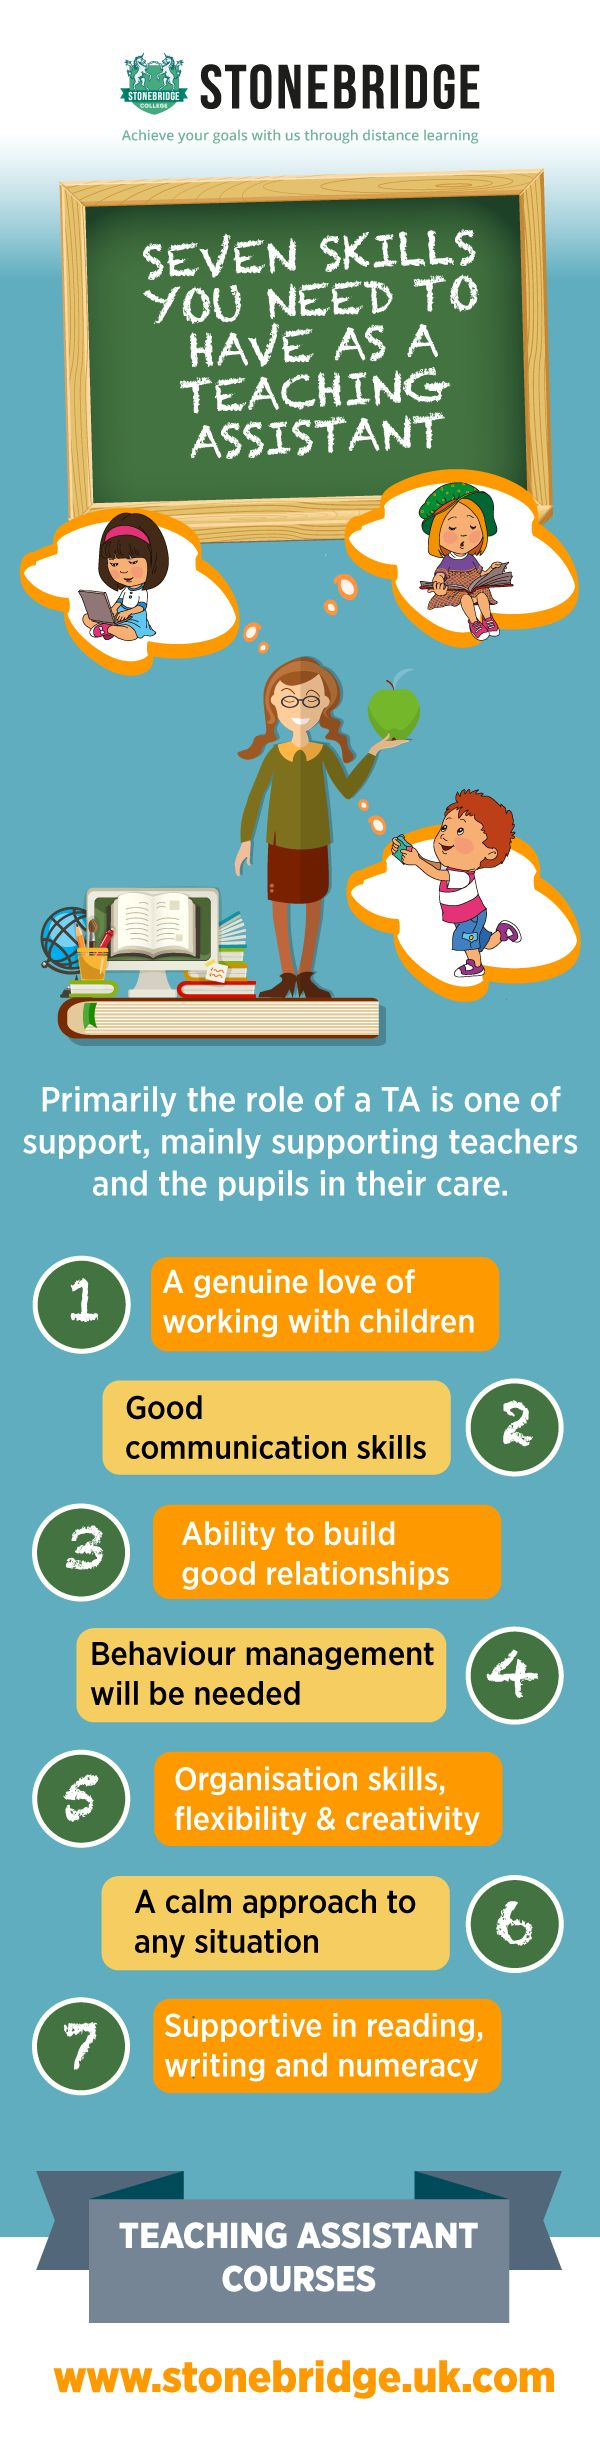 Want to become a Teaching Assistant? Make sure you have these 7 skills!